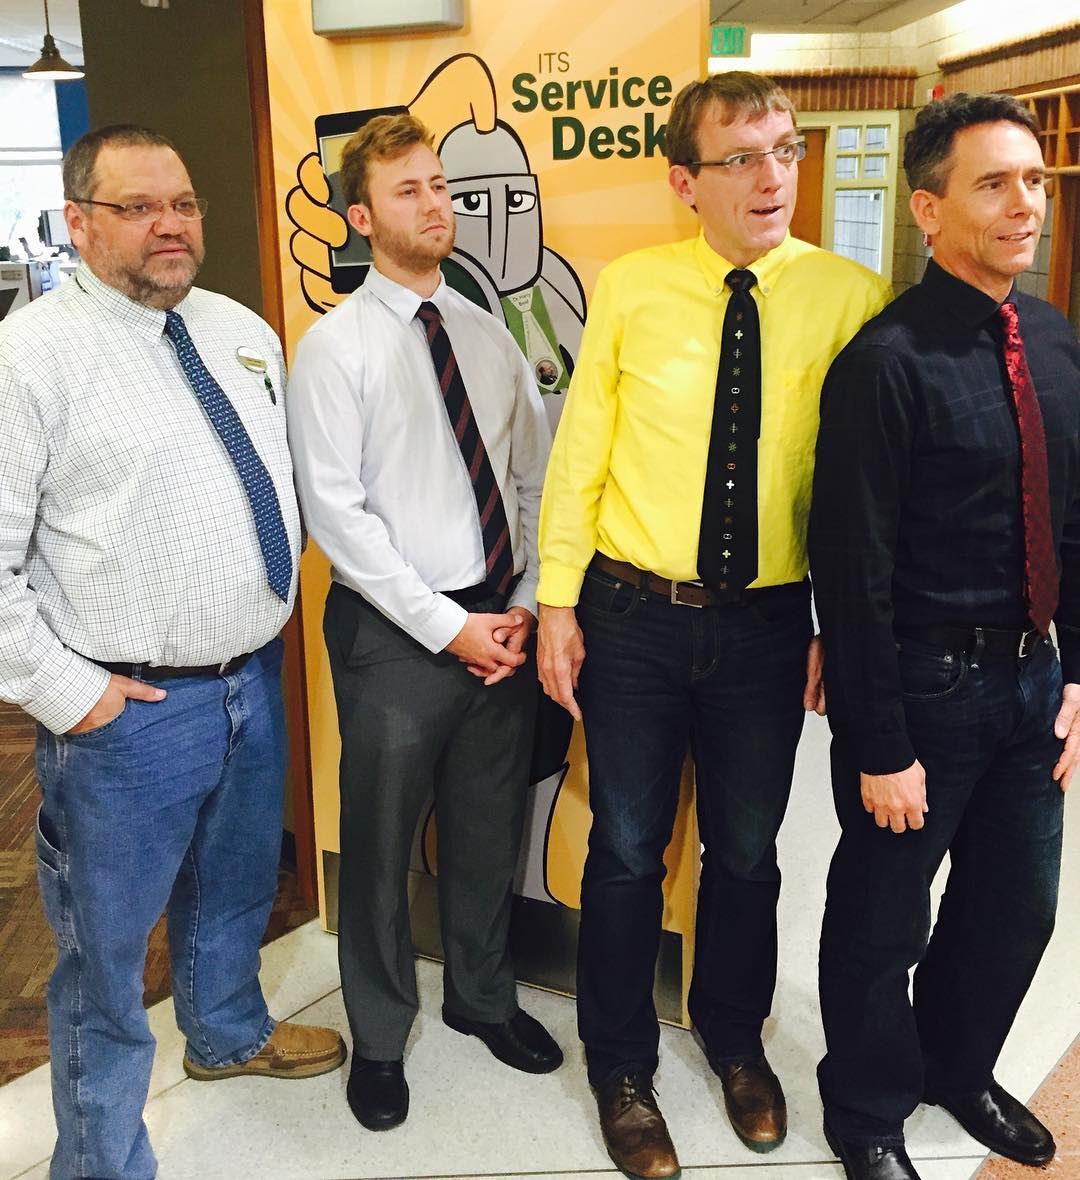 Part of the @stnorbert ITS crew #tiedayfriday w/ paper cameo by our Masculinity Scholar Dr Harry Brod c/o @snccvc